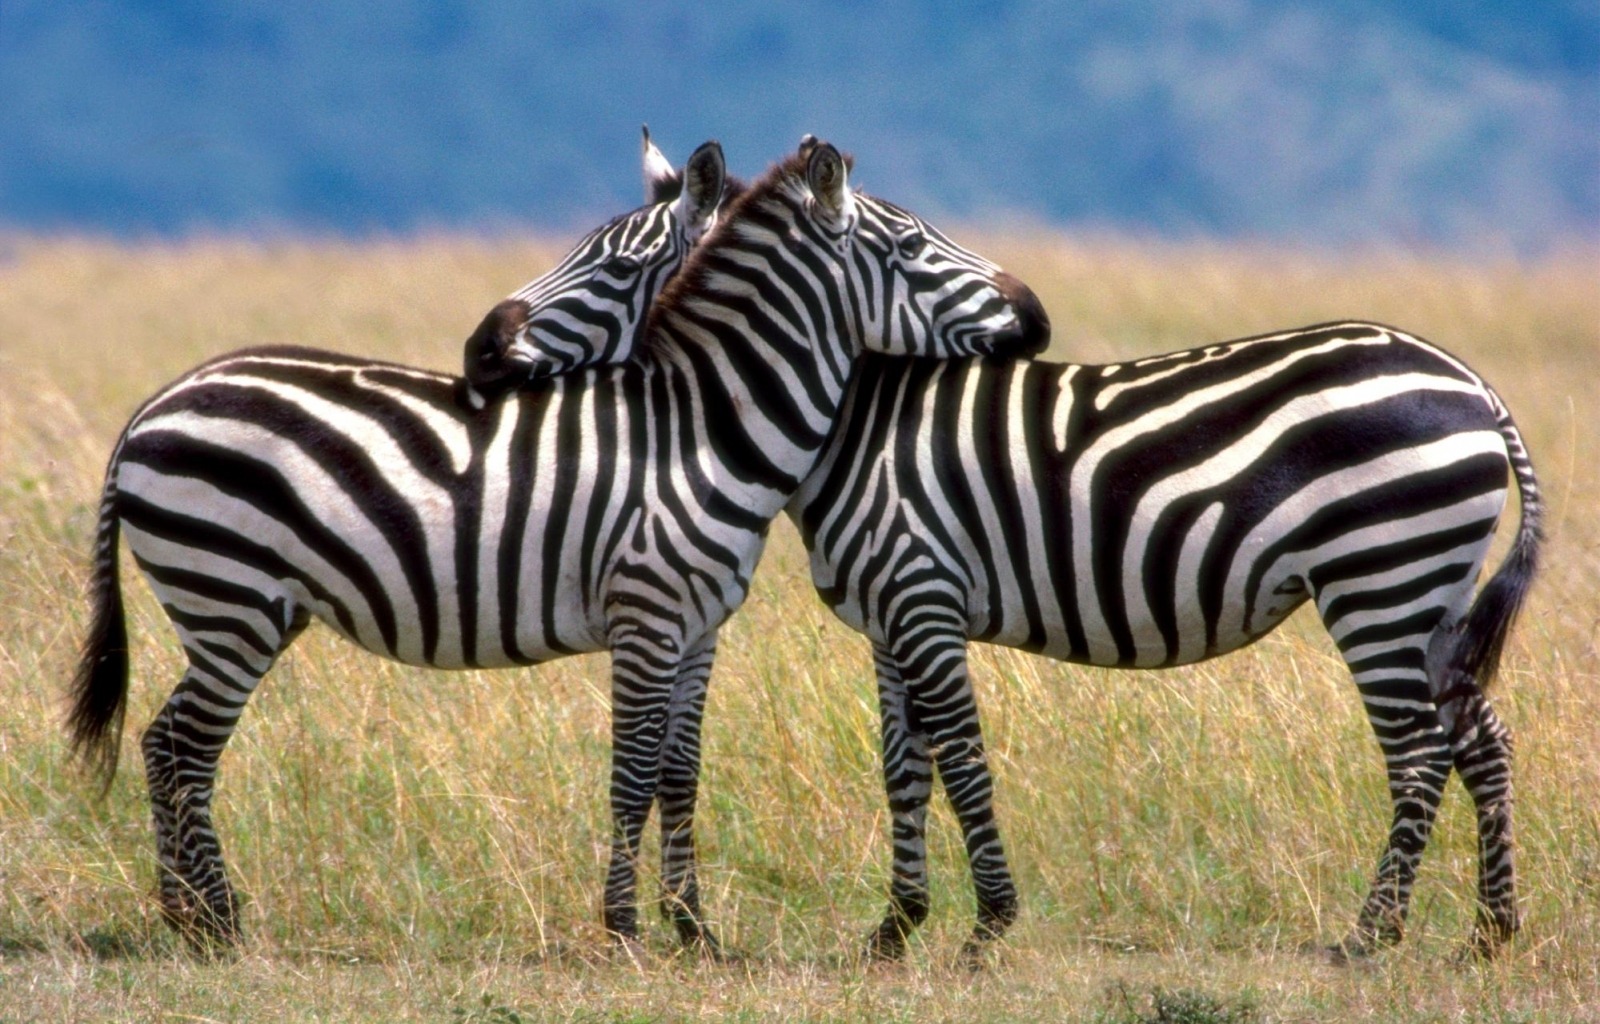 44348 download wallpaper Animals, Zebra screensavers and pictures for free